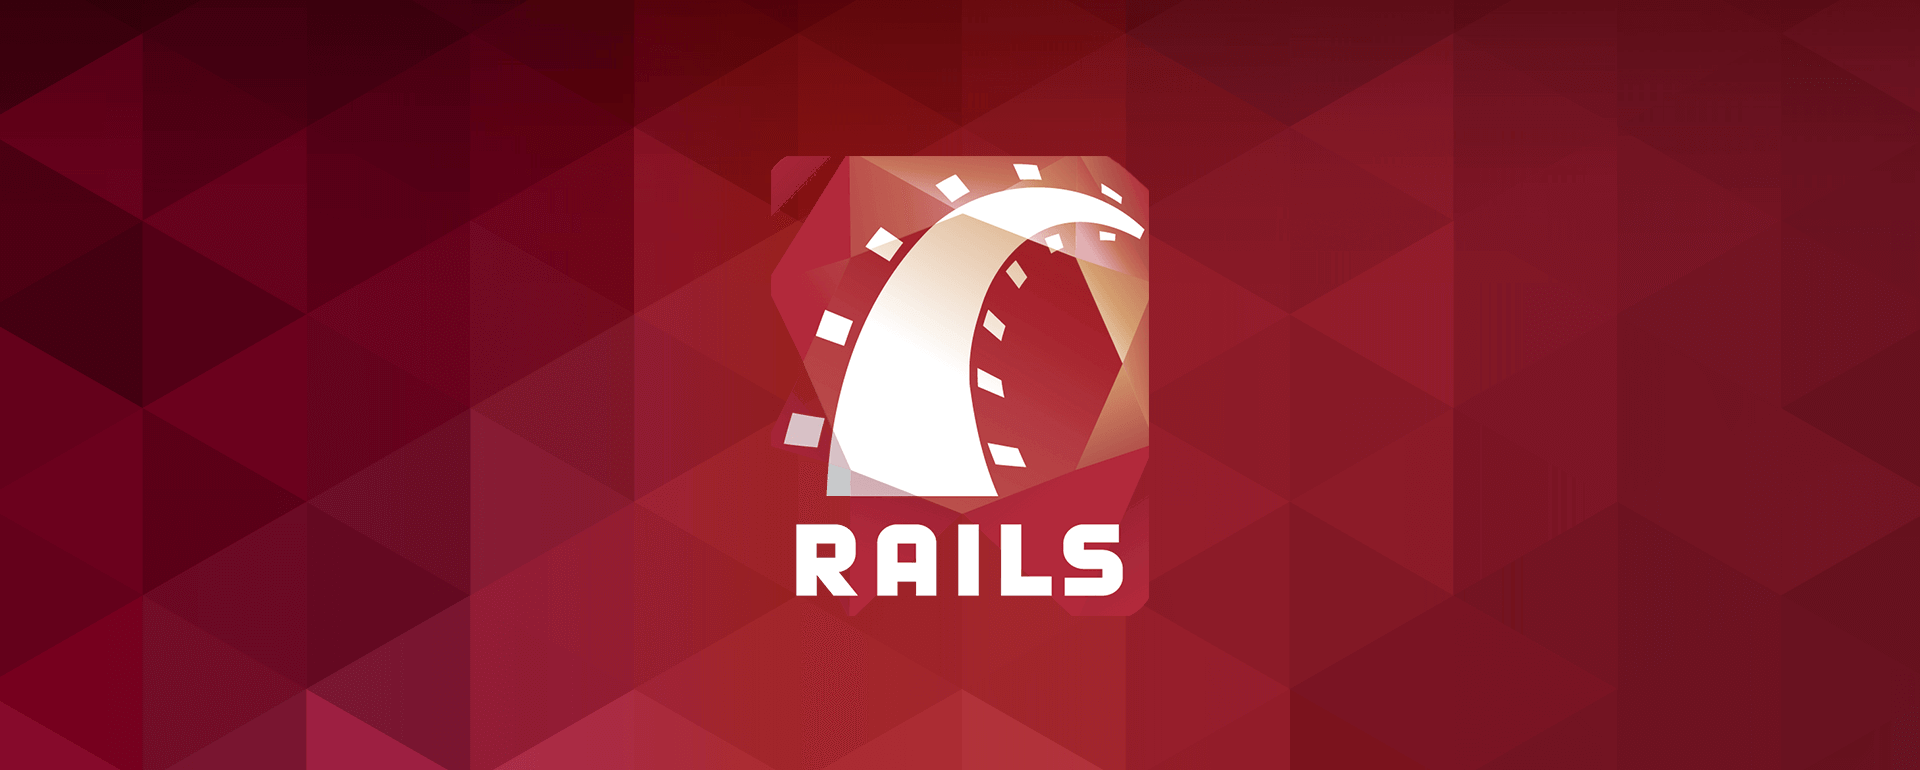 What is Ruby on Rails and Why It Should Be Considered for a Development Project